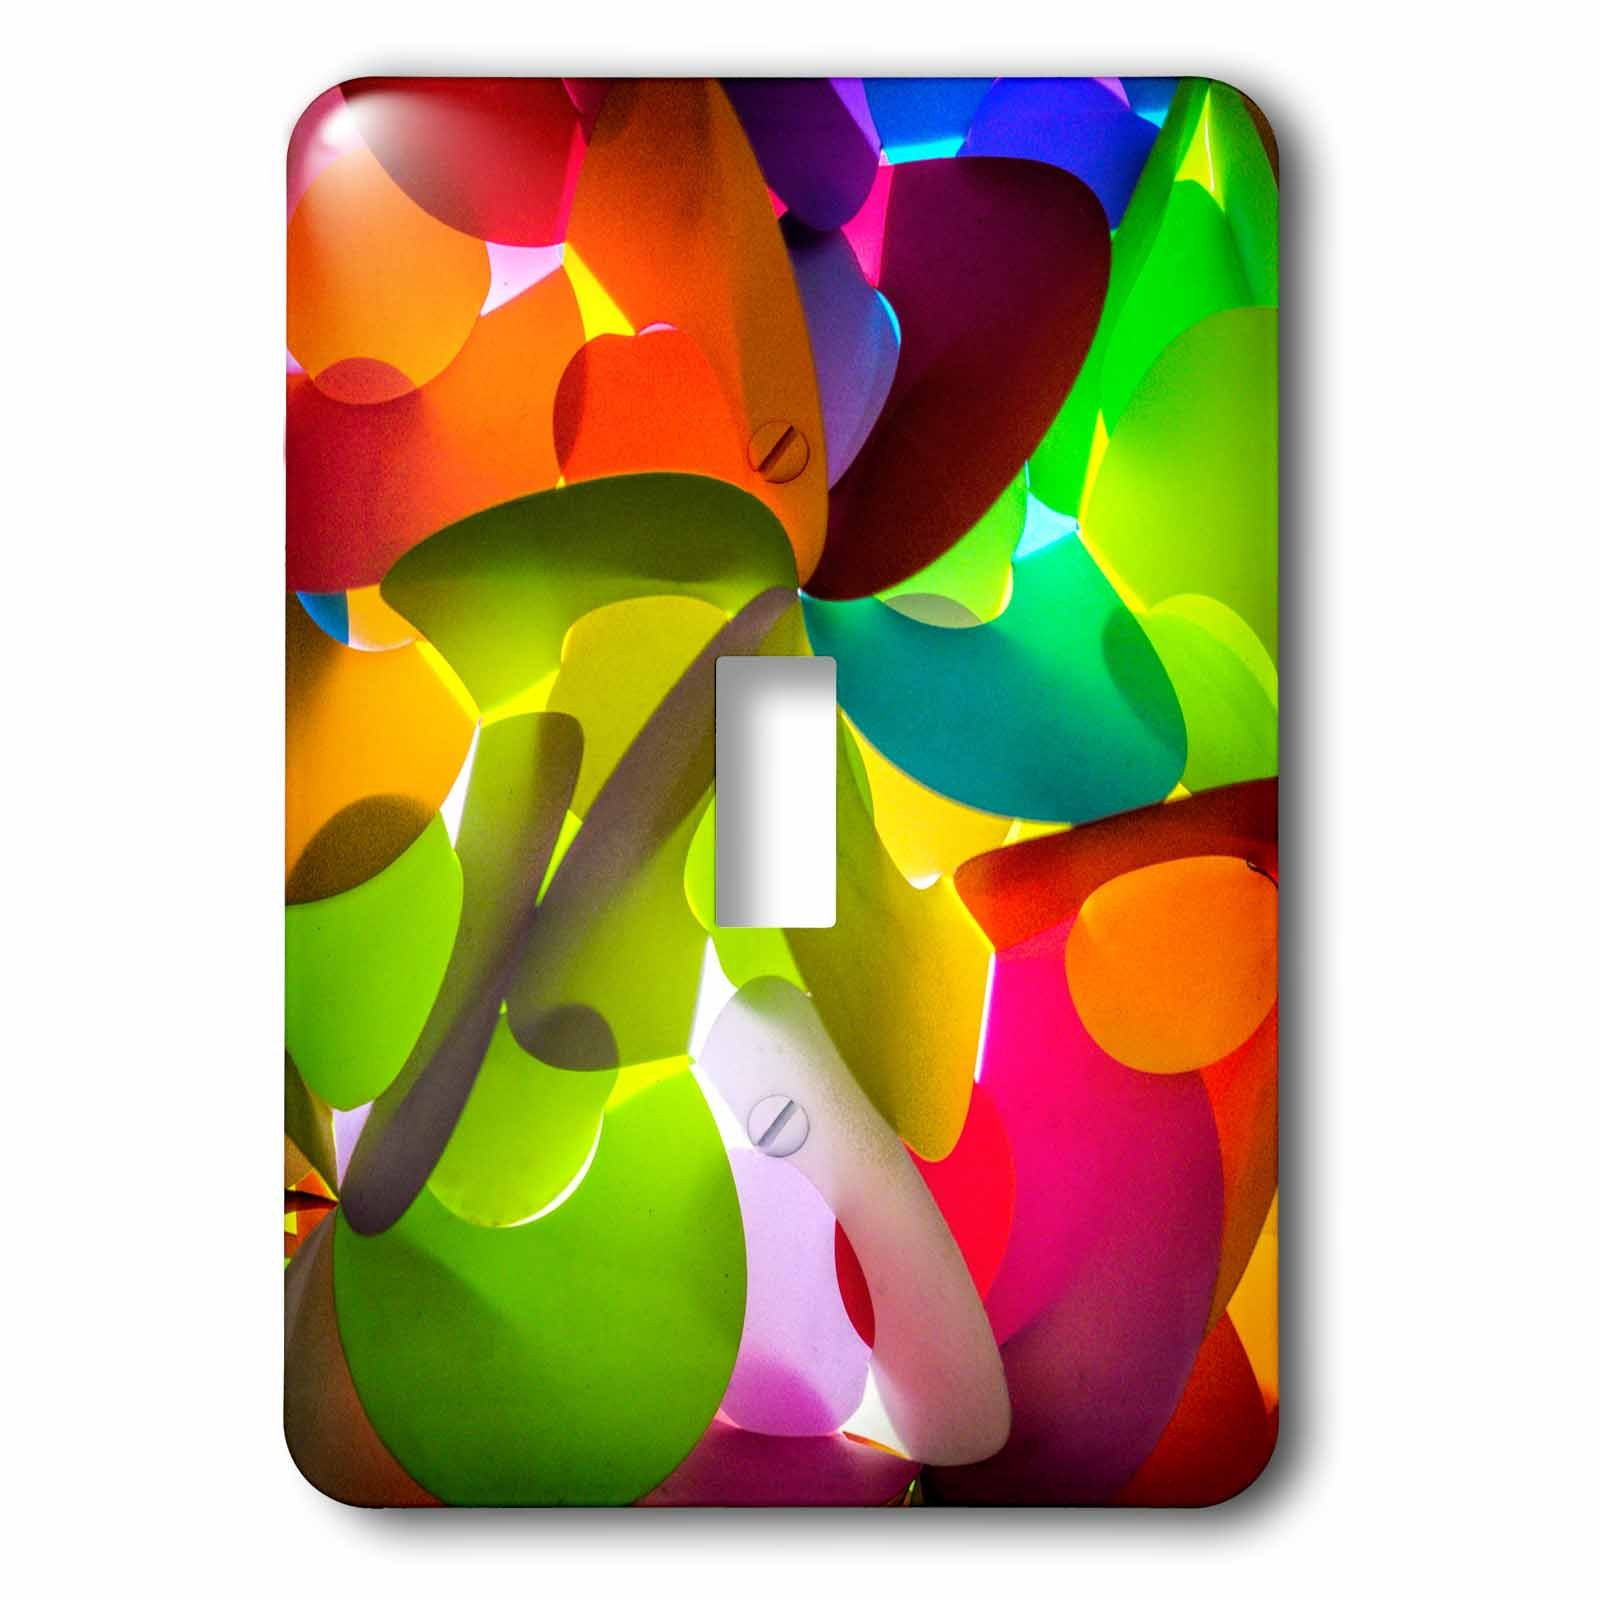 3dRose Danita Delimont - Abstracts - Thailand, Chiang Mai, Thai Market Place - Light Switch Covers - single toggle switch (lsp_276975_1) by 3dRose